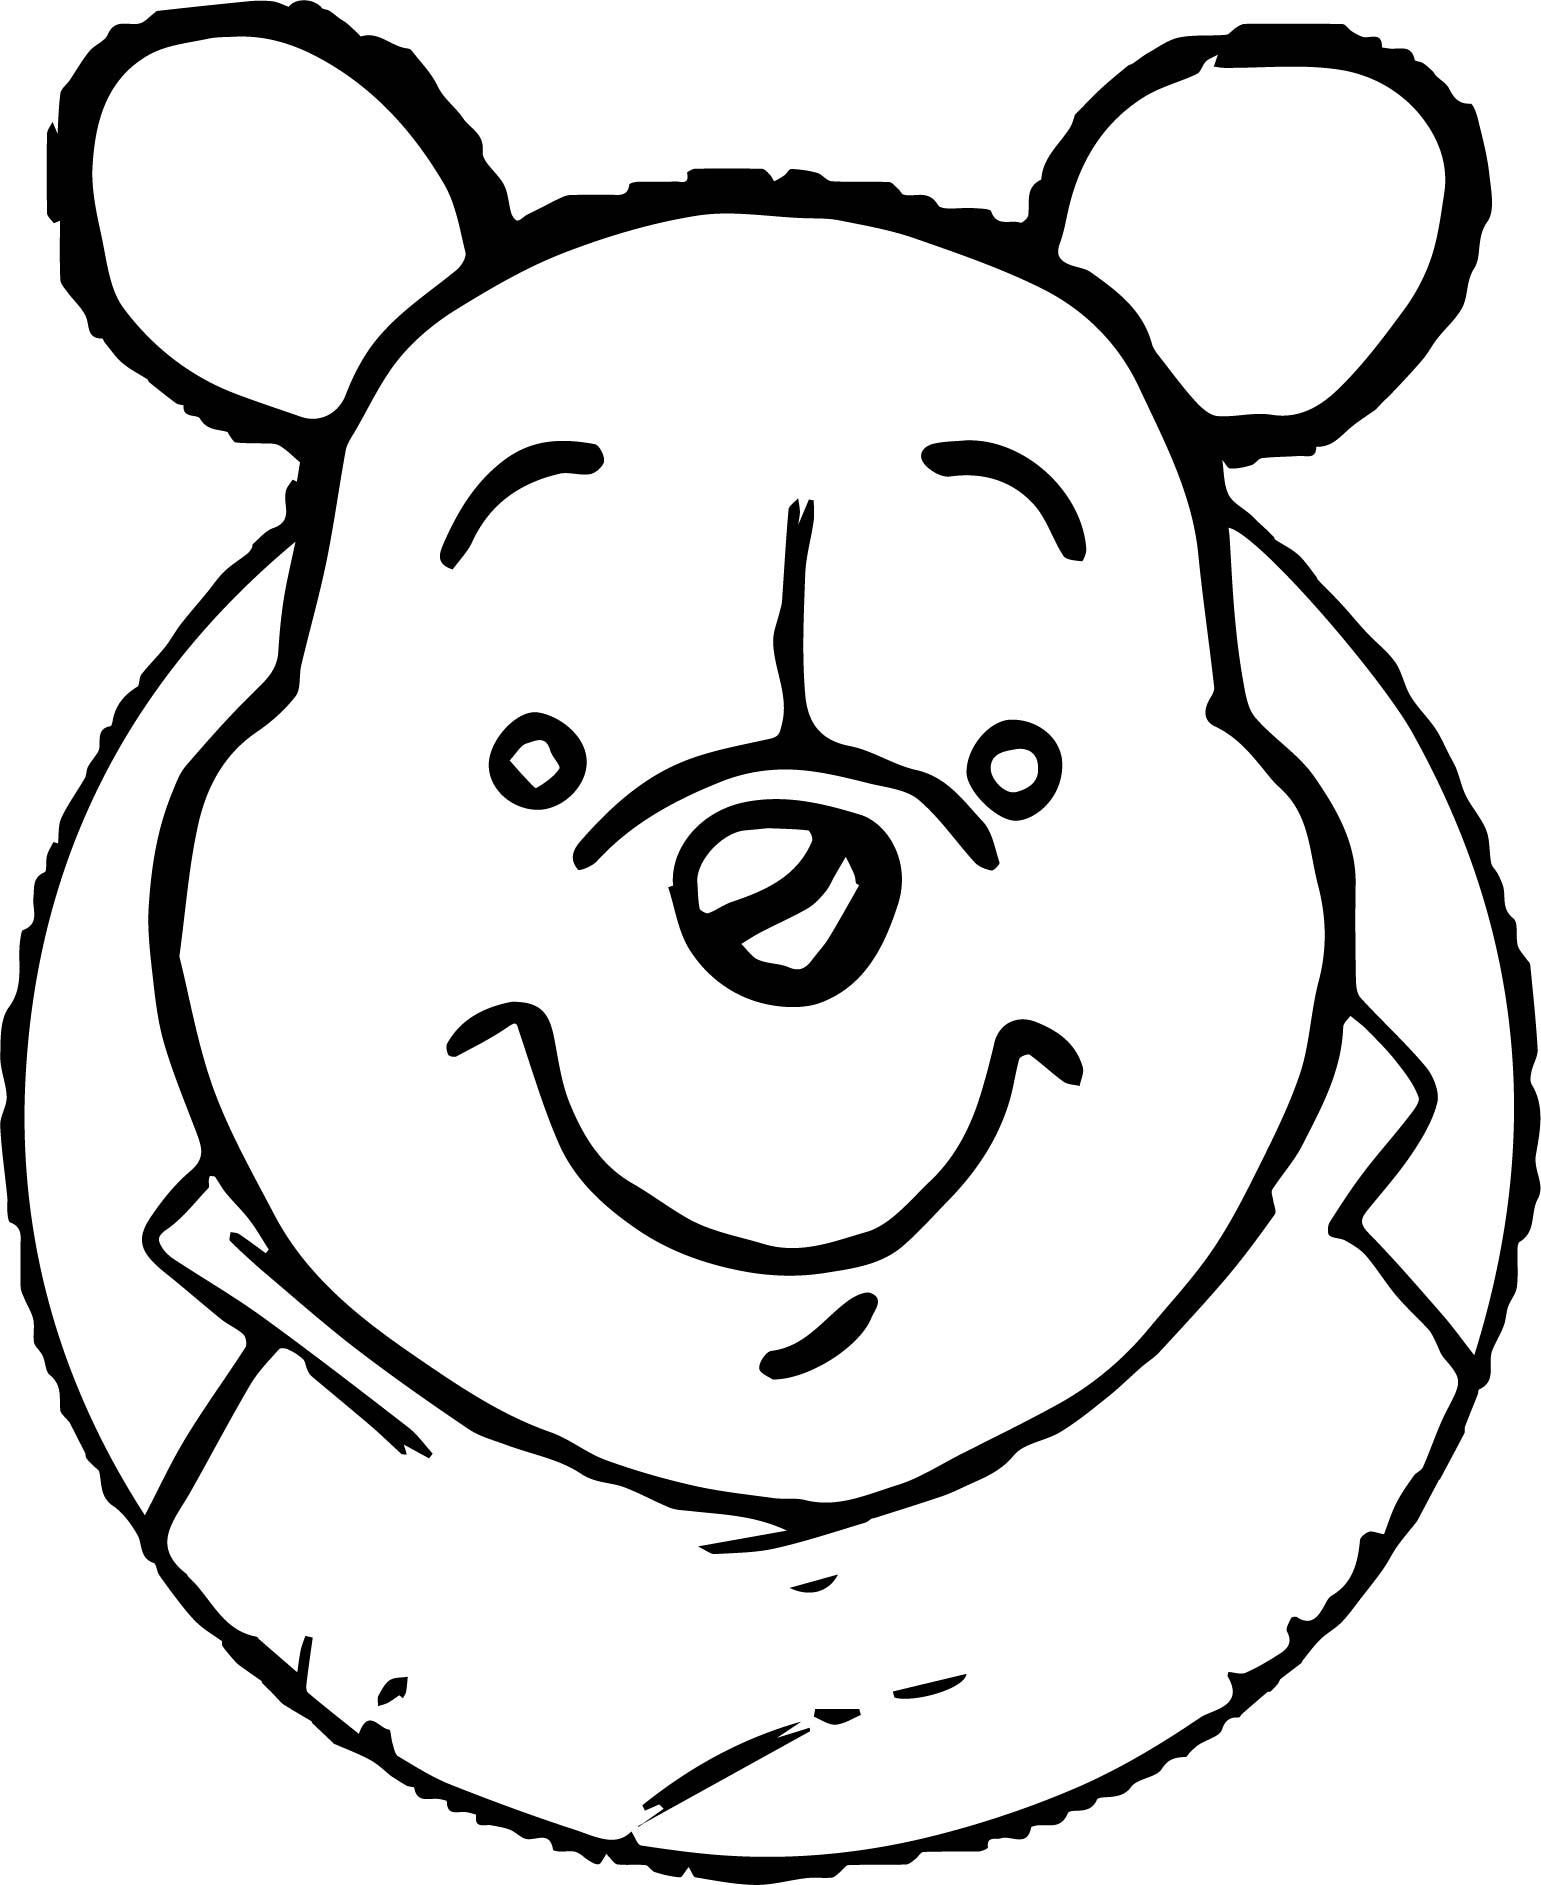 baby pooh coloring pages - baby pooh big face coloring page